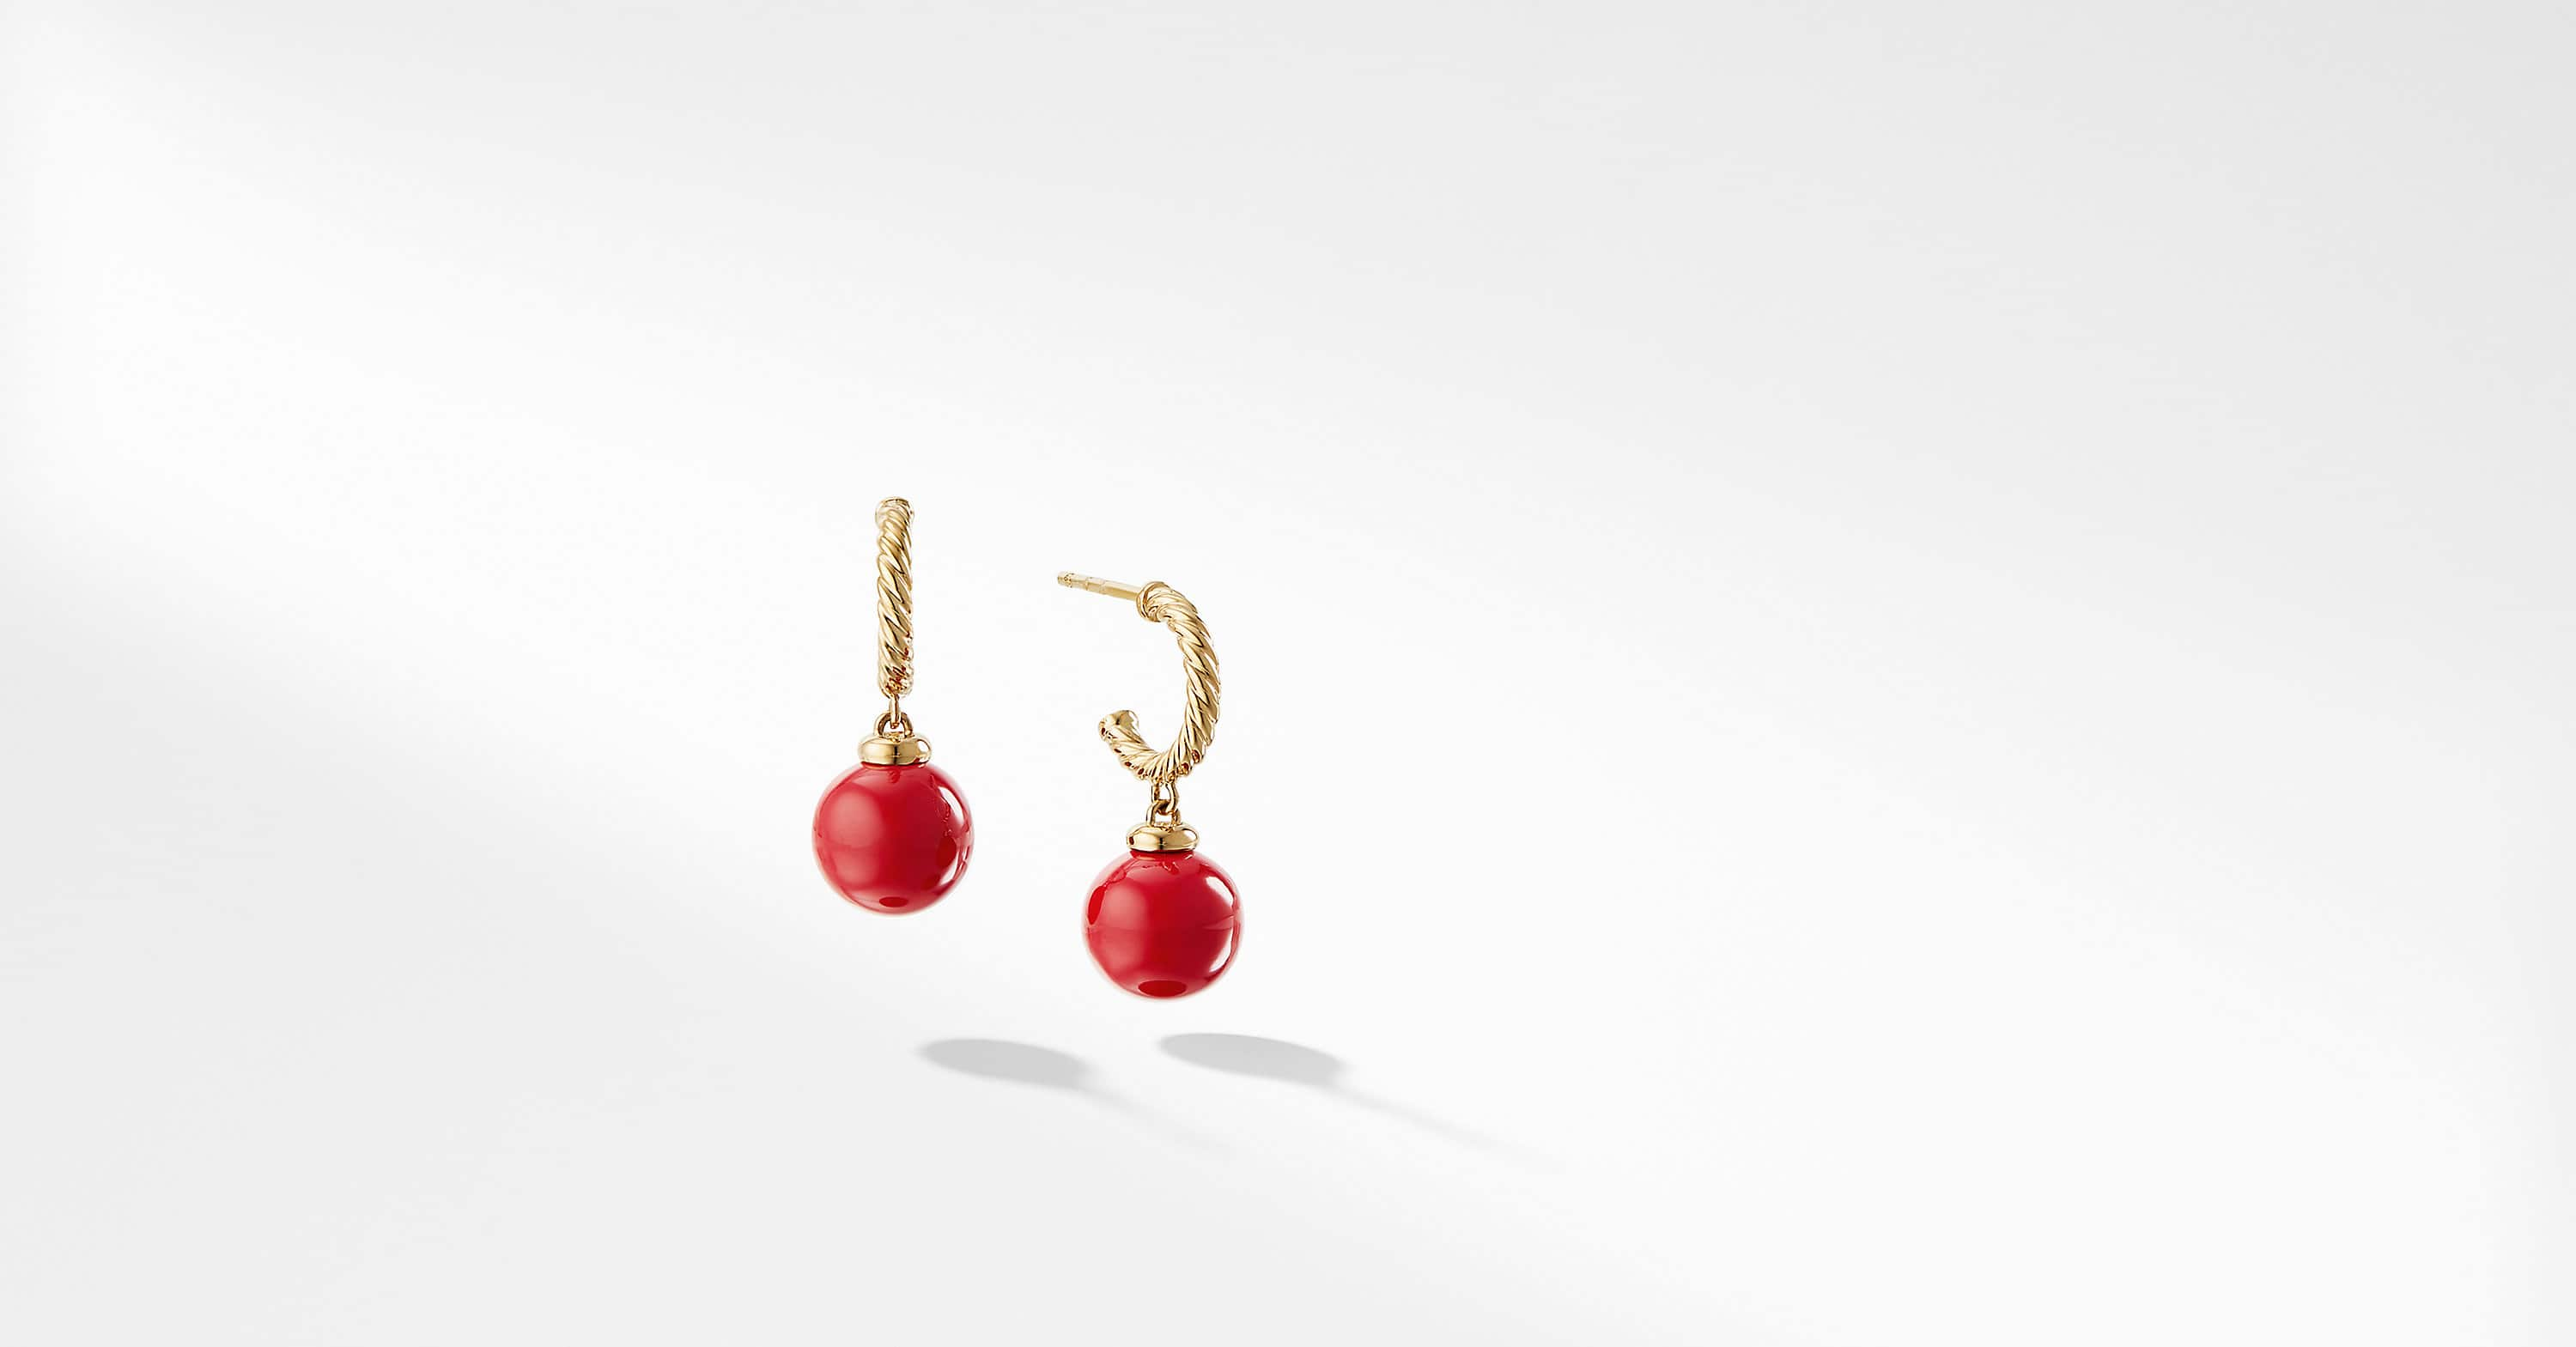 Solari Hoop Earrings with 18K Gold